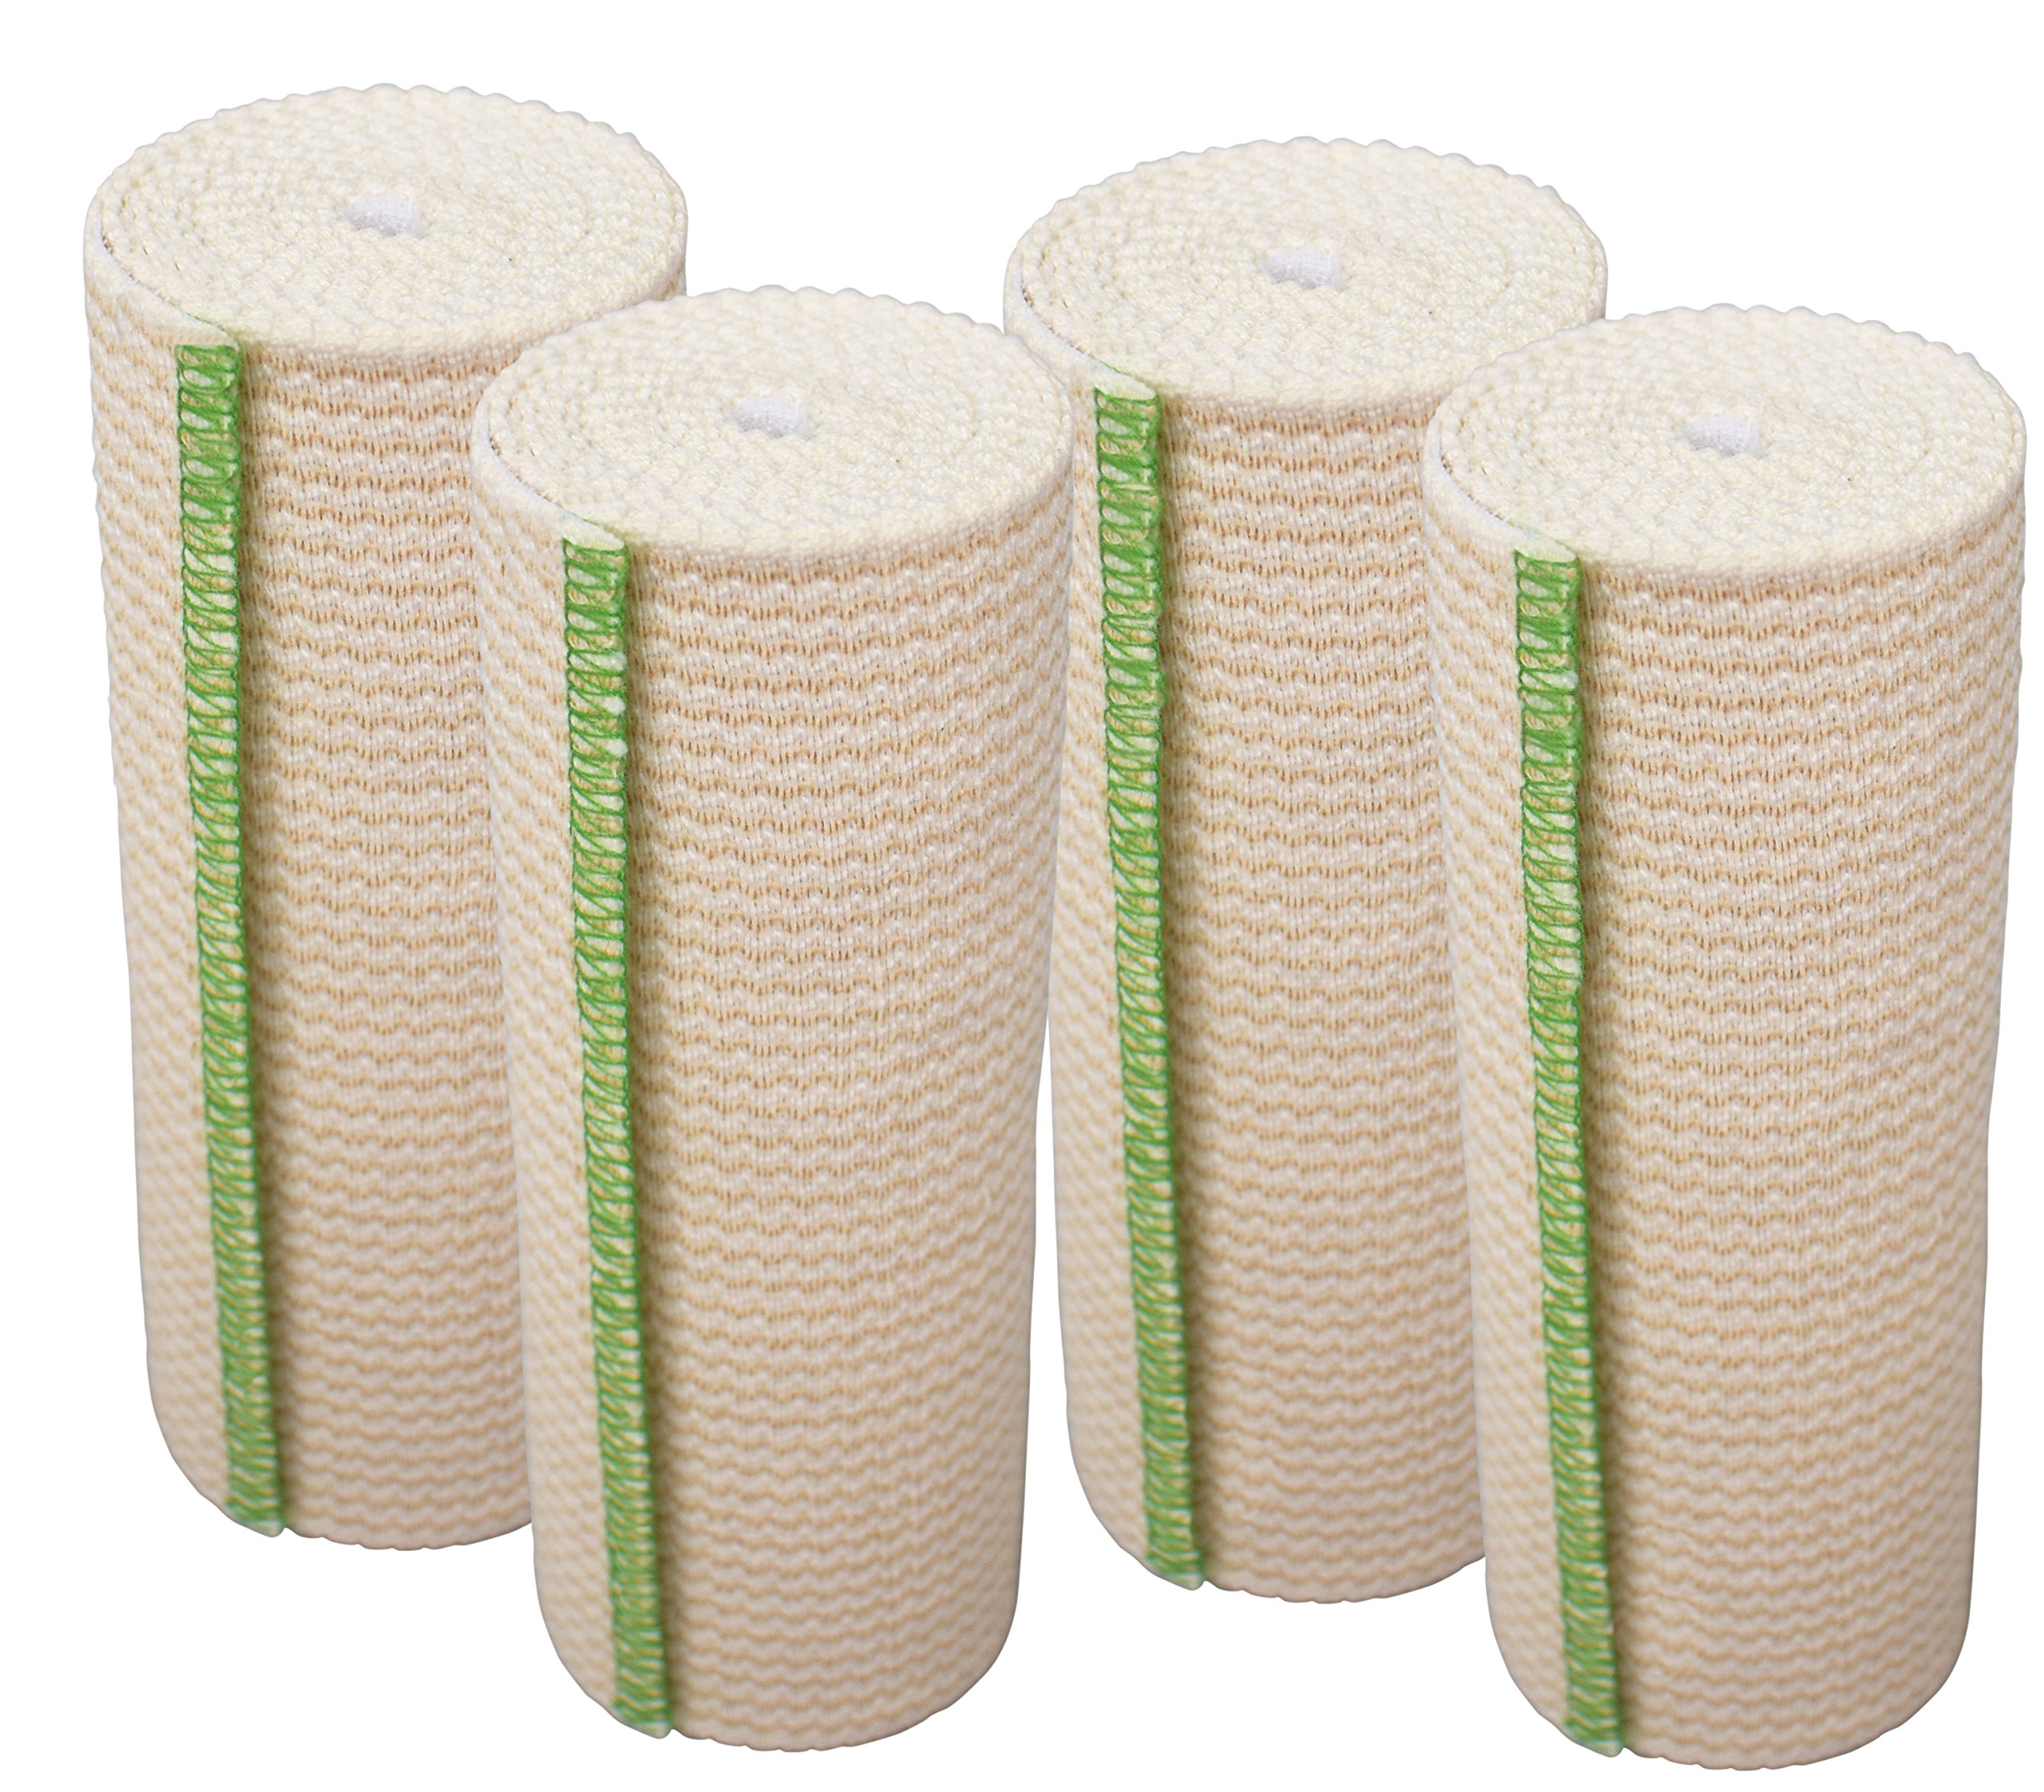 GT Cotton Elastic Bandage with Hook and Loop Closure, 6'' Width - 4 Pack